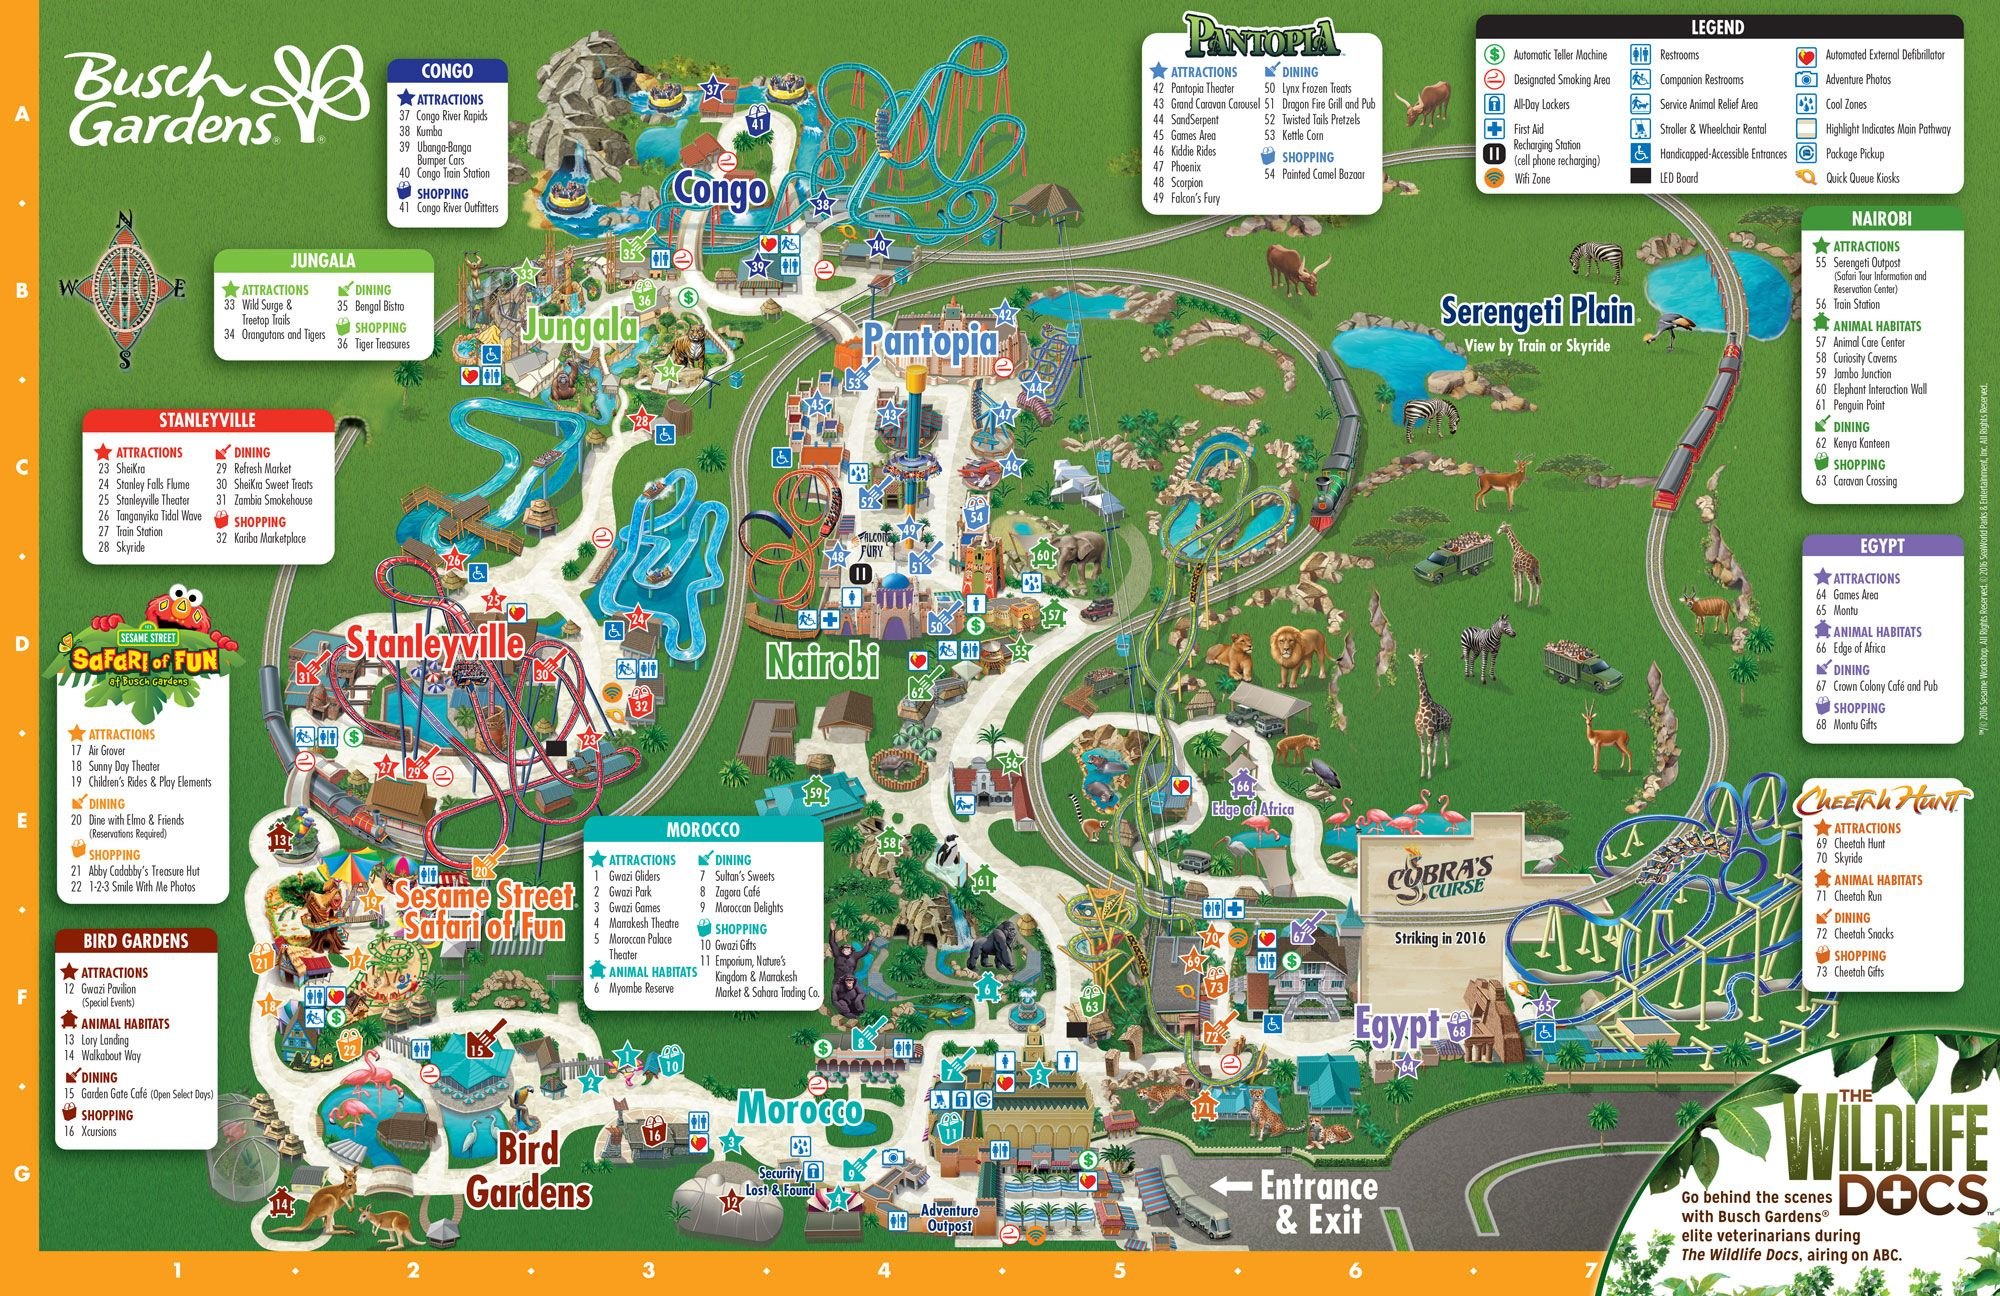 2c451443dc48a851ae38ee9a664215d8 - Discounts For Busch Gardens Tampa Florida